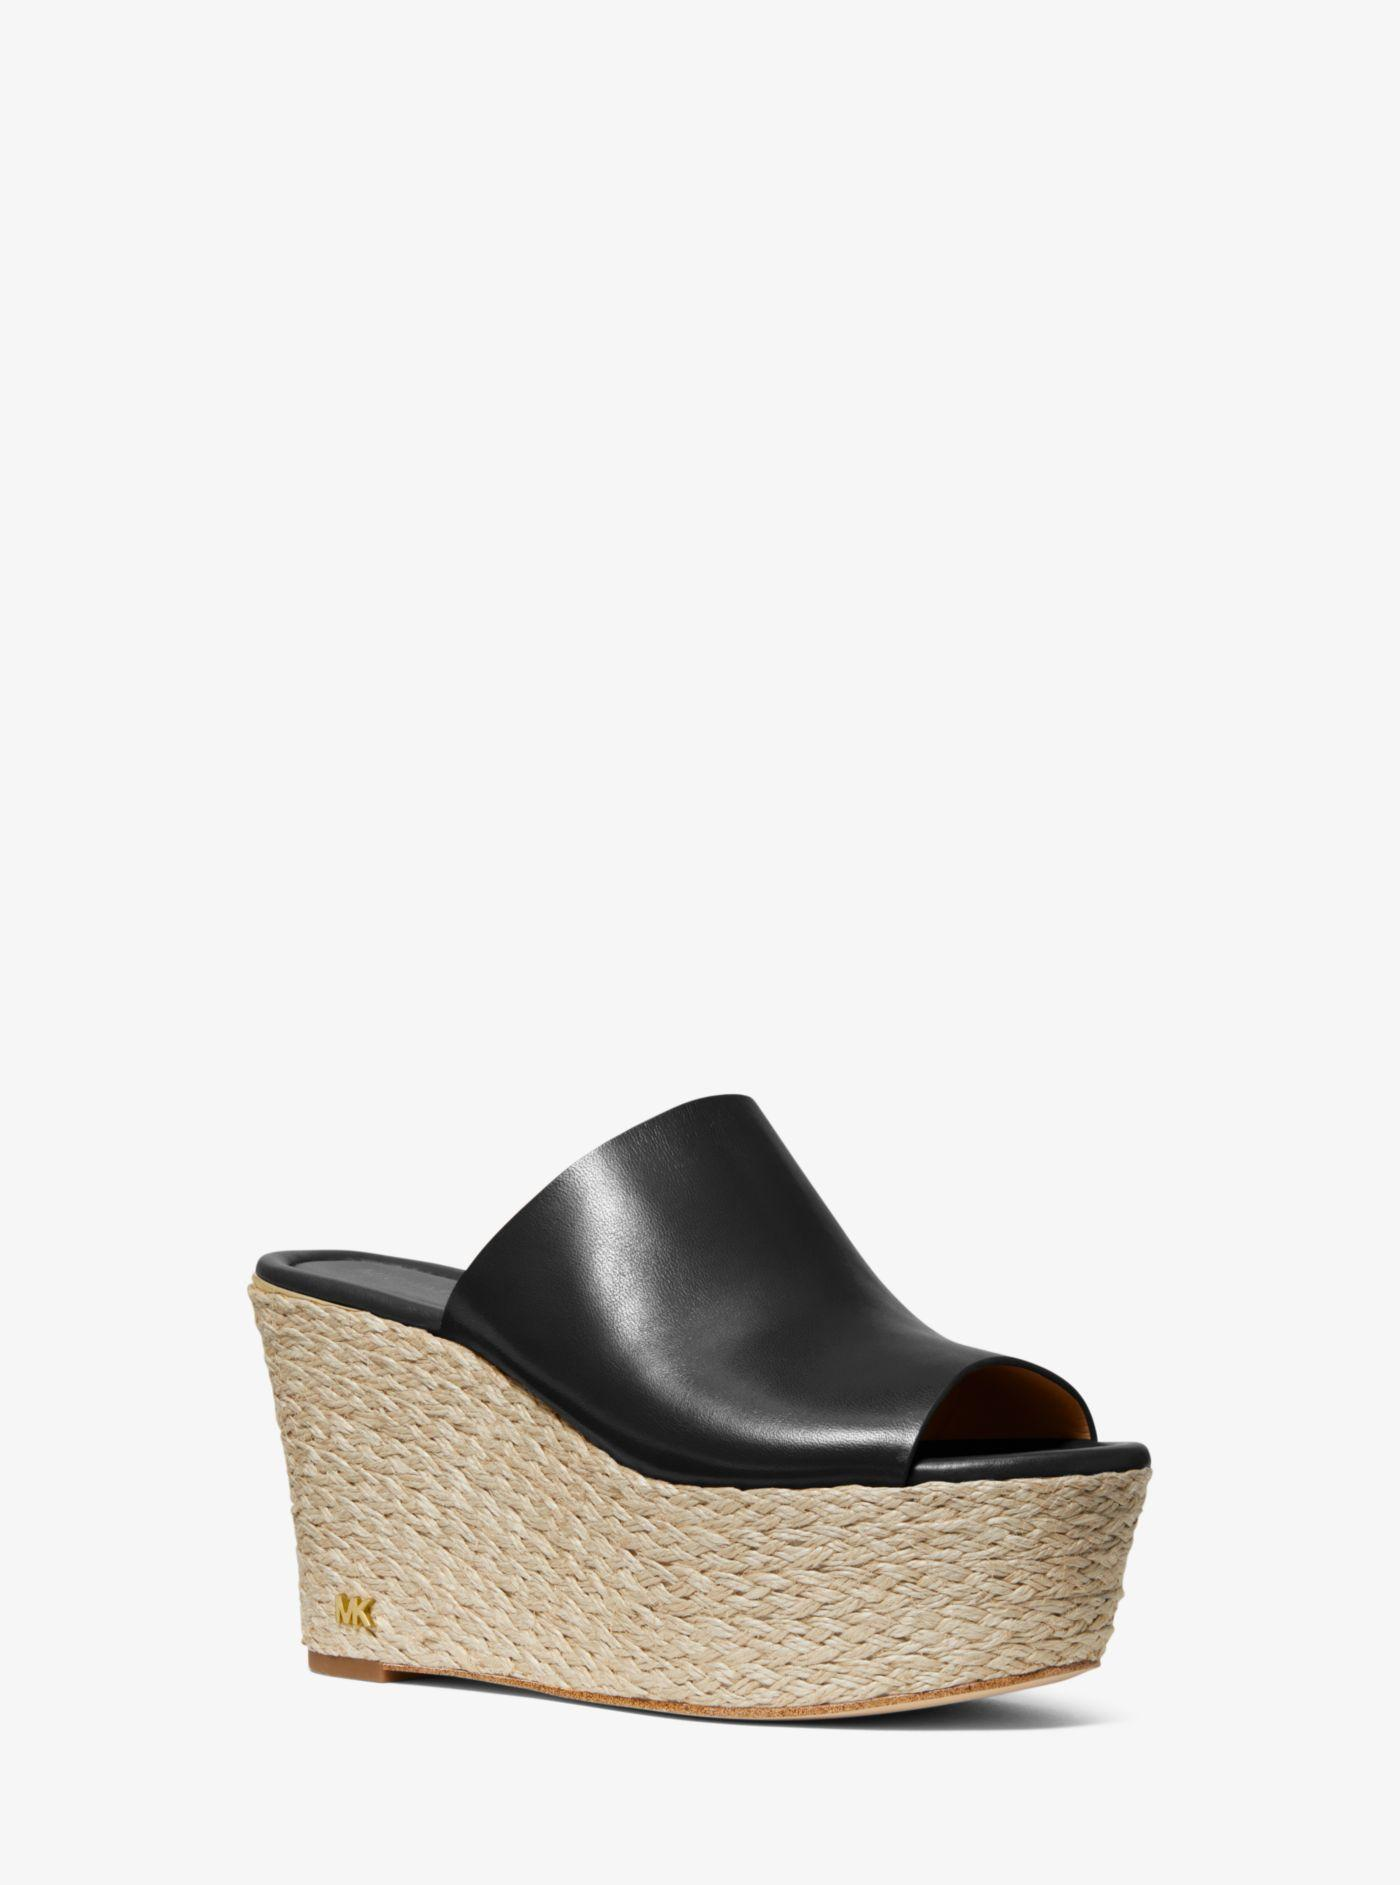 e14905a57585 Lyst - Michael Kors Cunningham Leather Wedge in Black